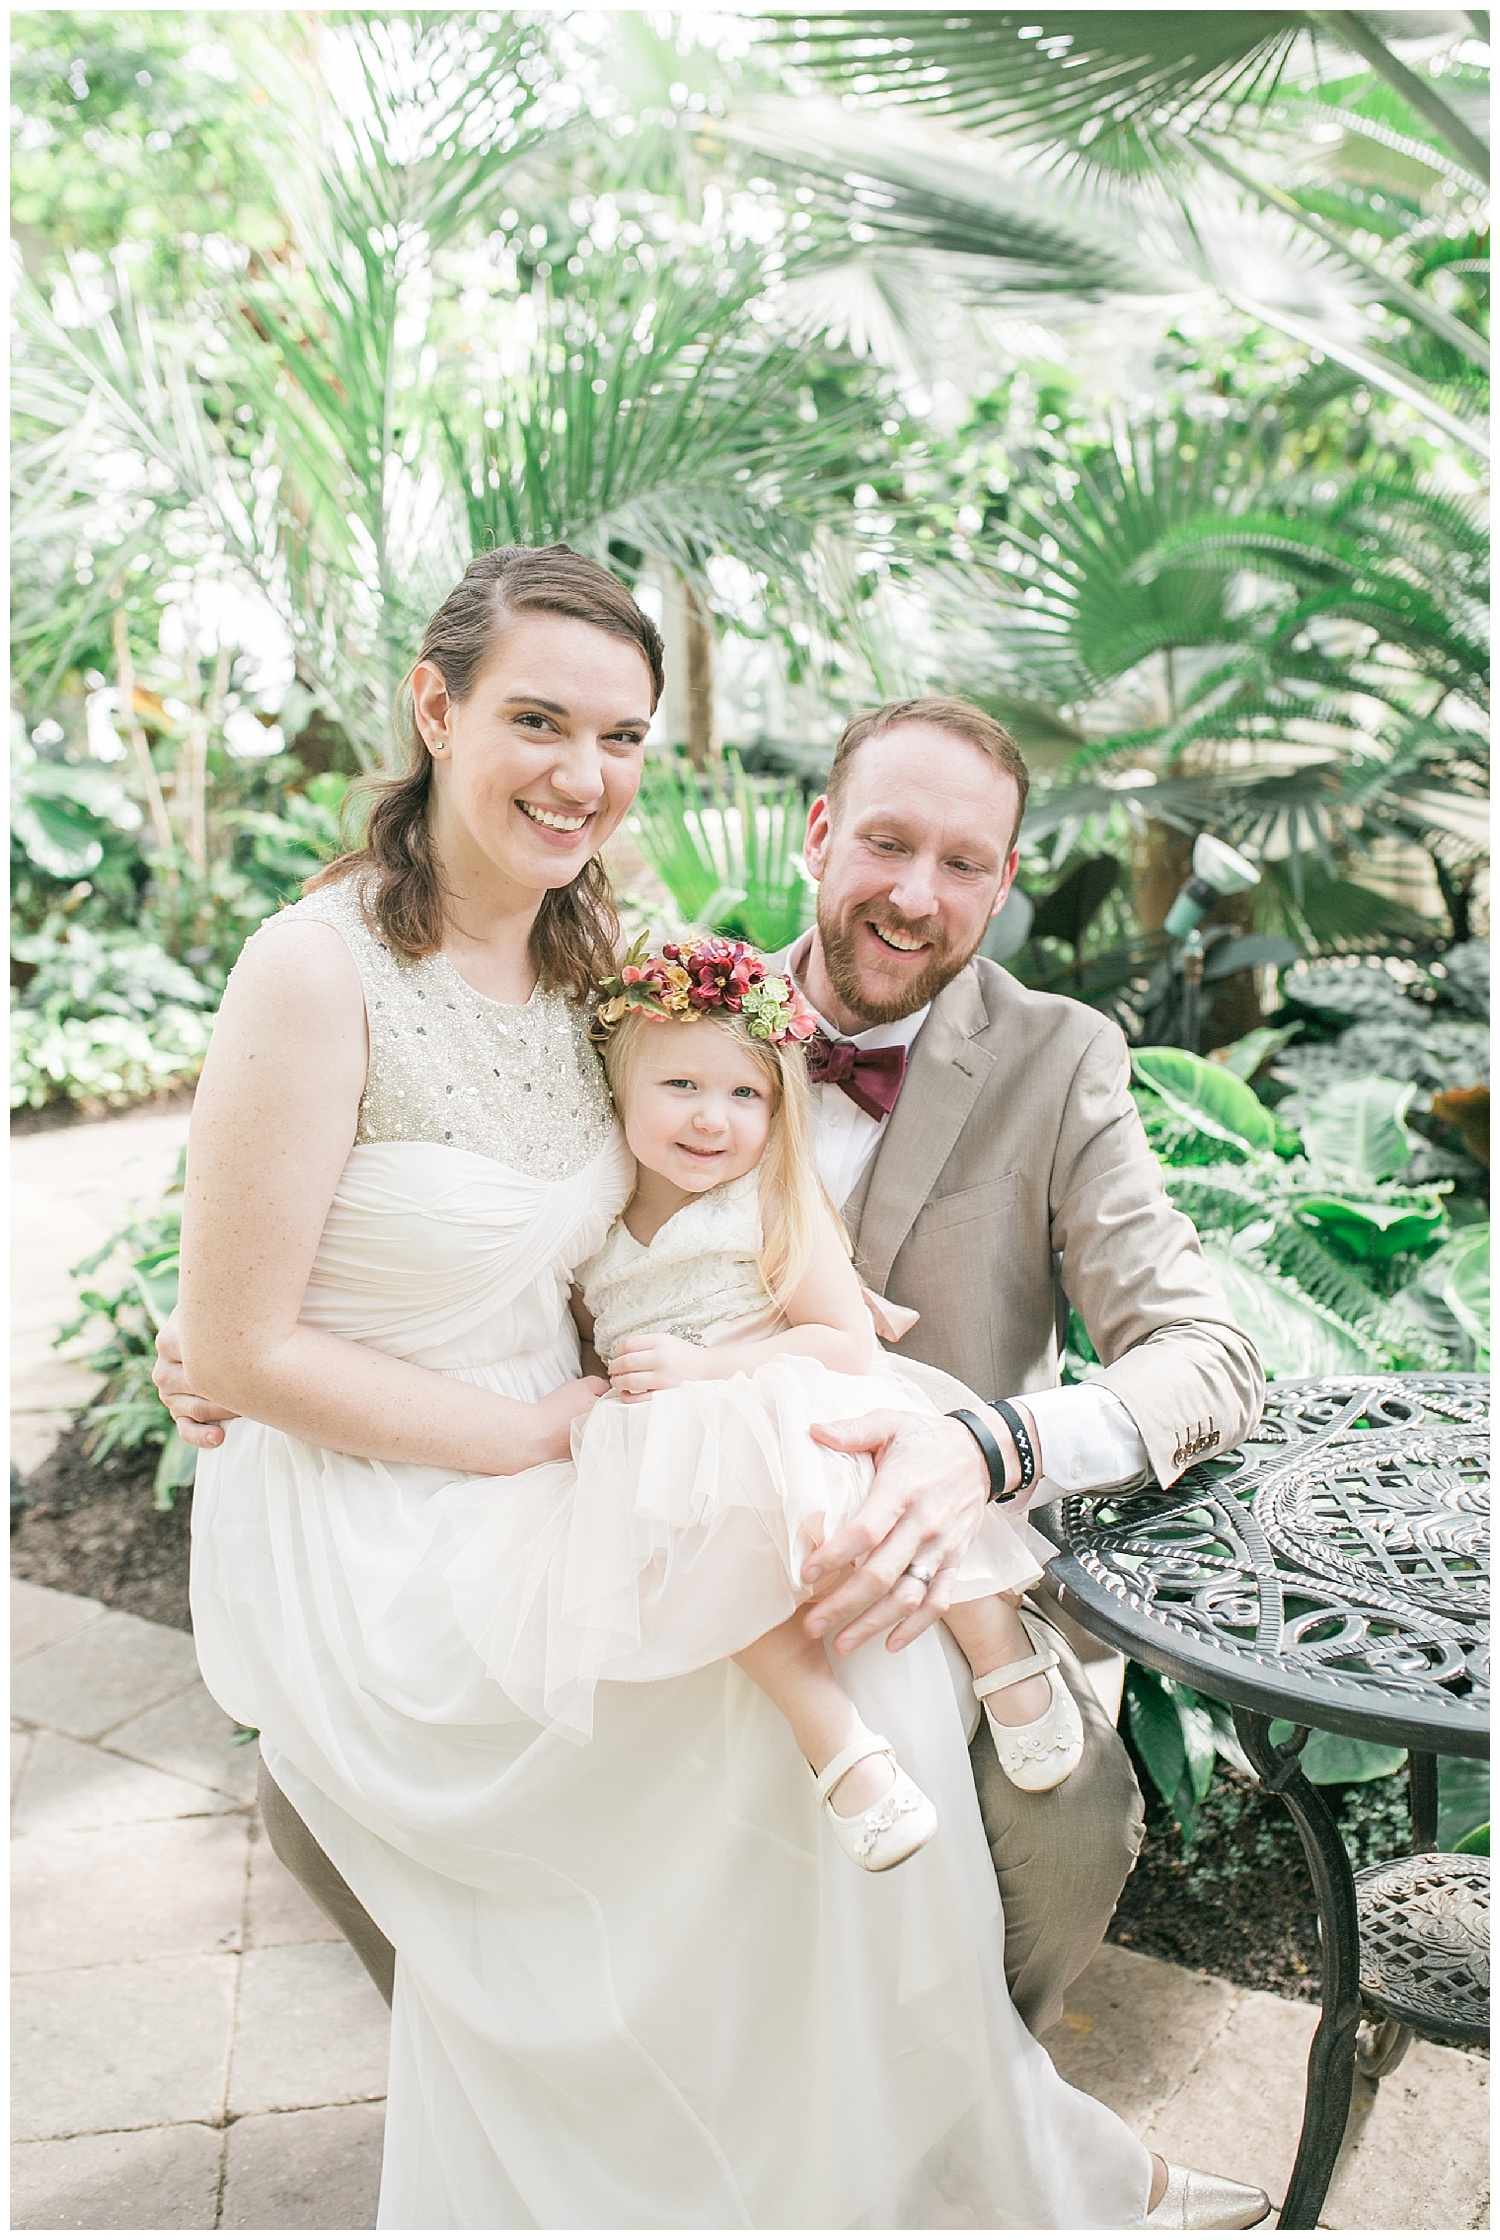 Buffalo Botanical gardens wedding - Buffalo NY Lass and Beau 83.jpg